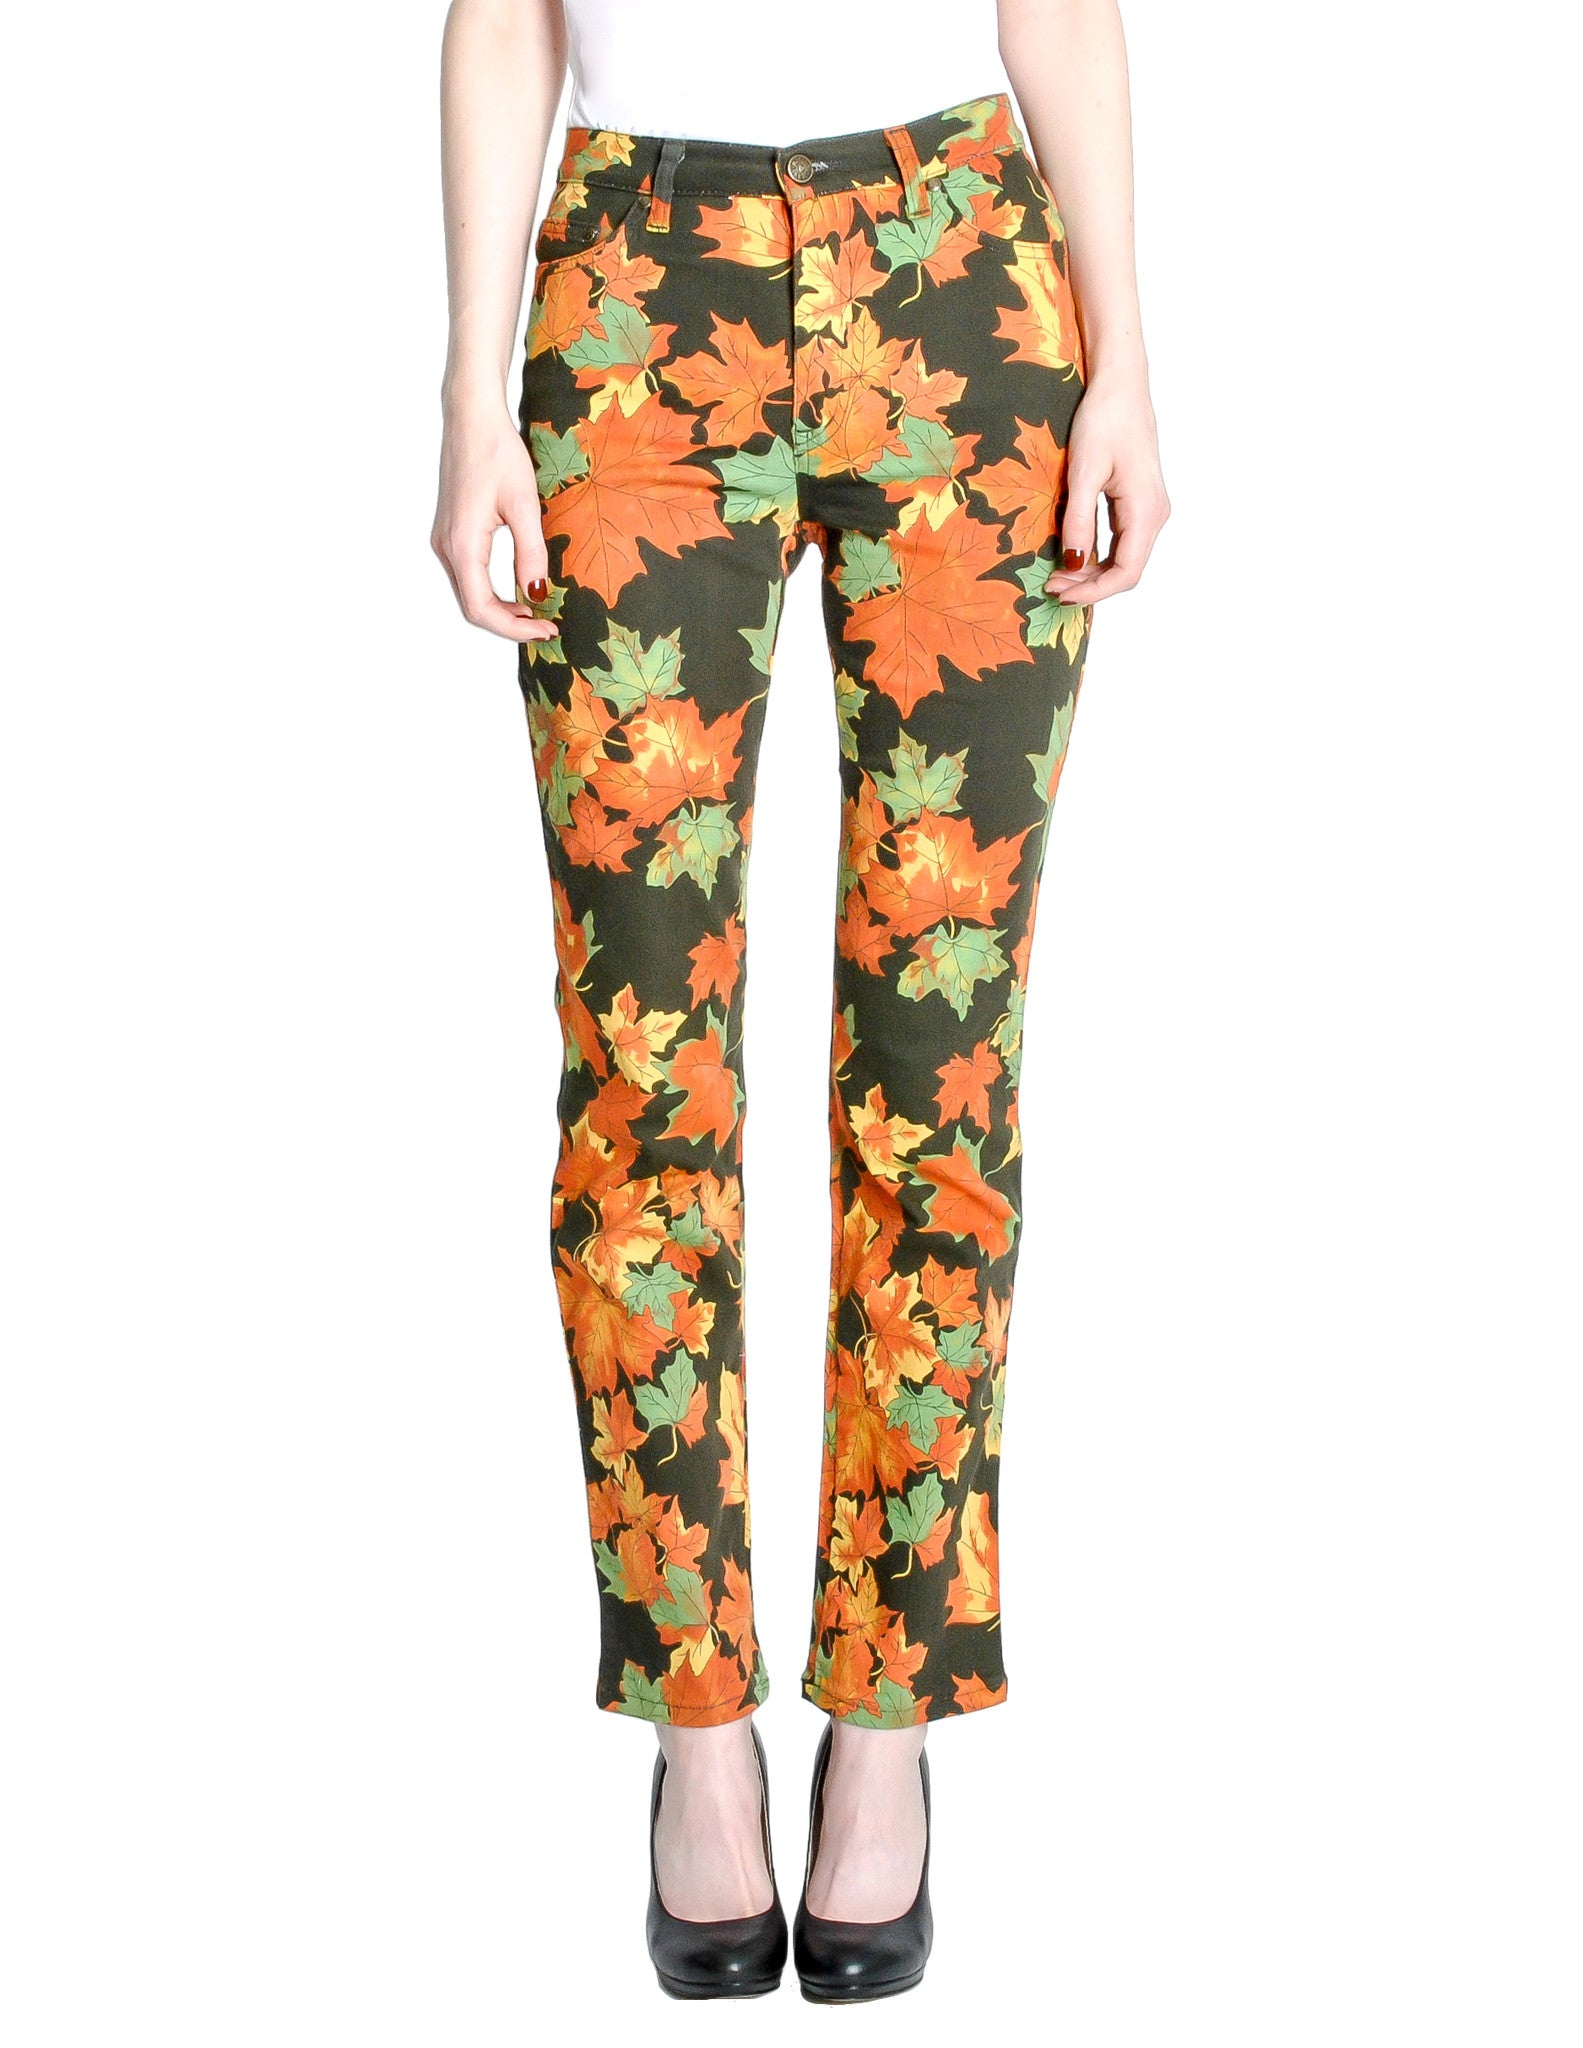 Moschino Vintage Leaf Pattern Jeans - Amarcord Vintage Fashion  - 1